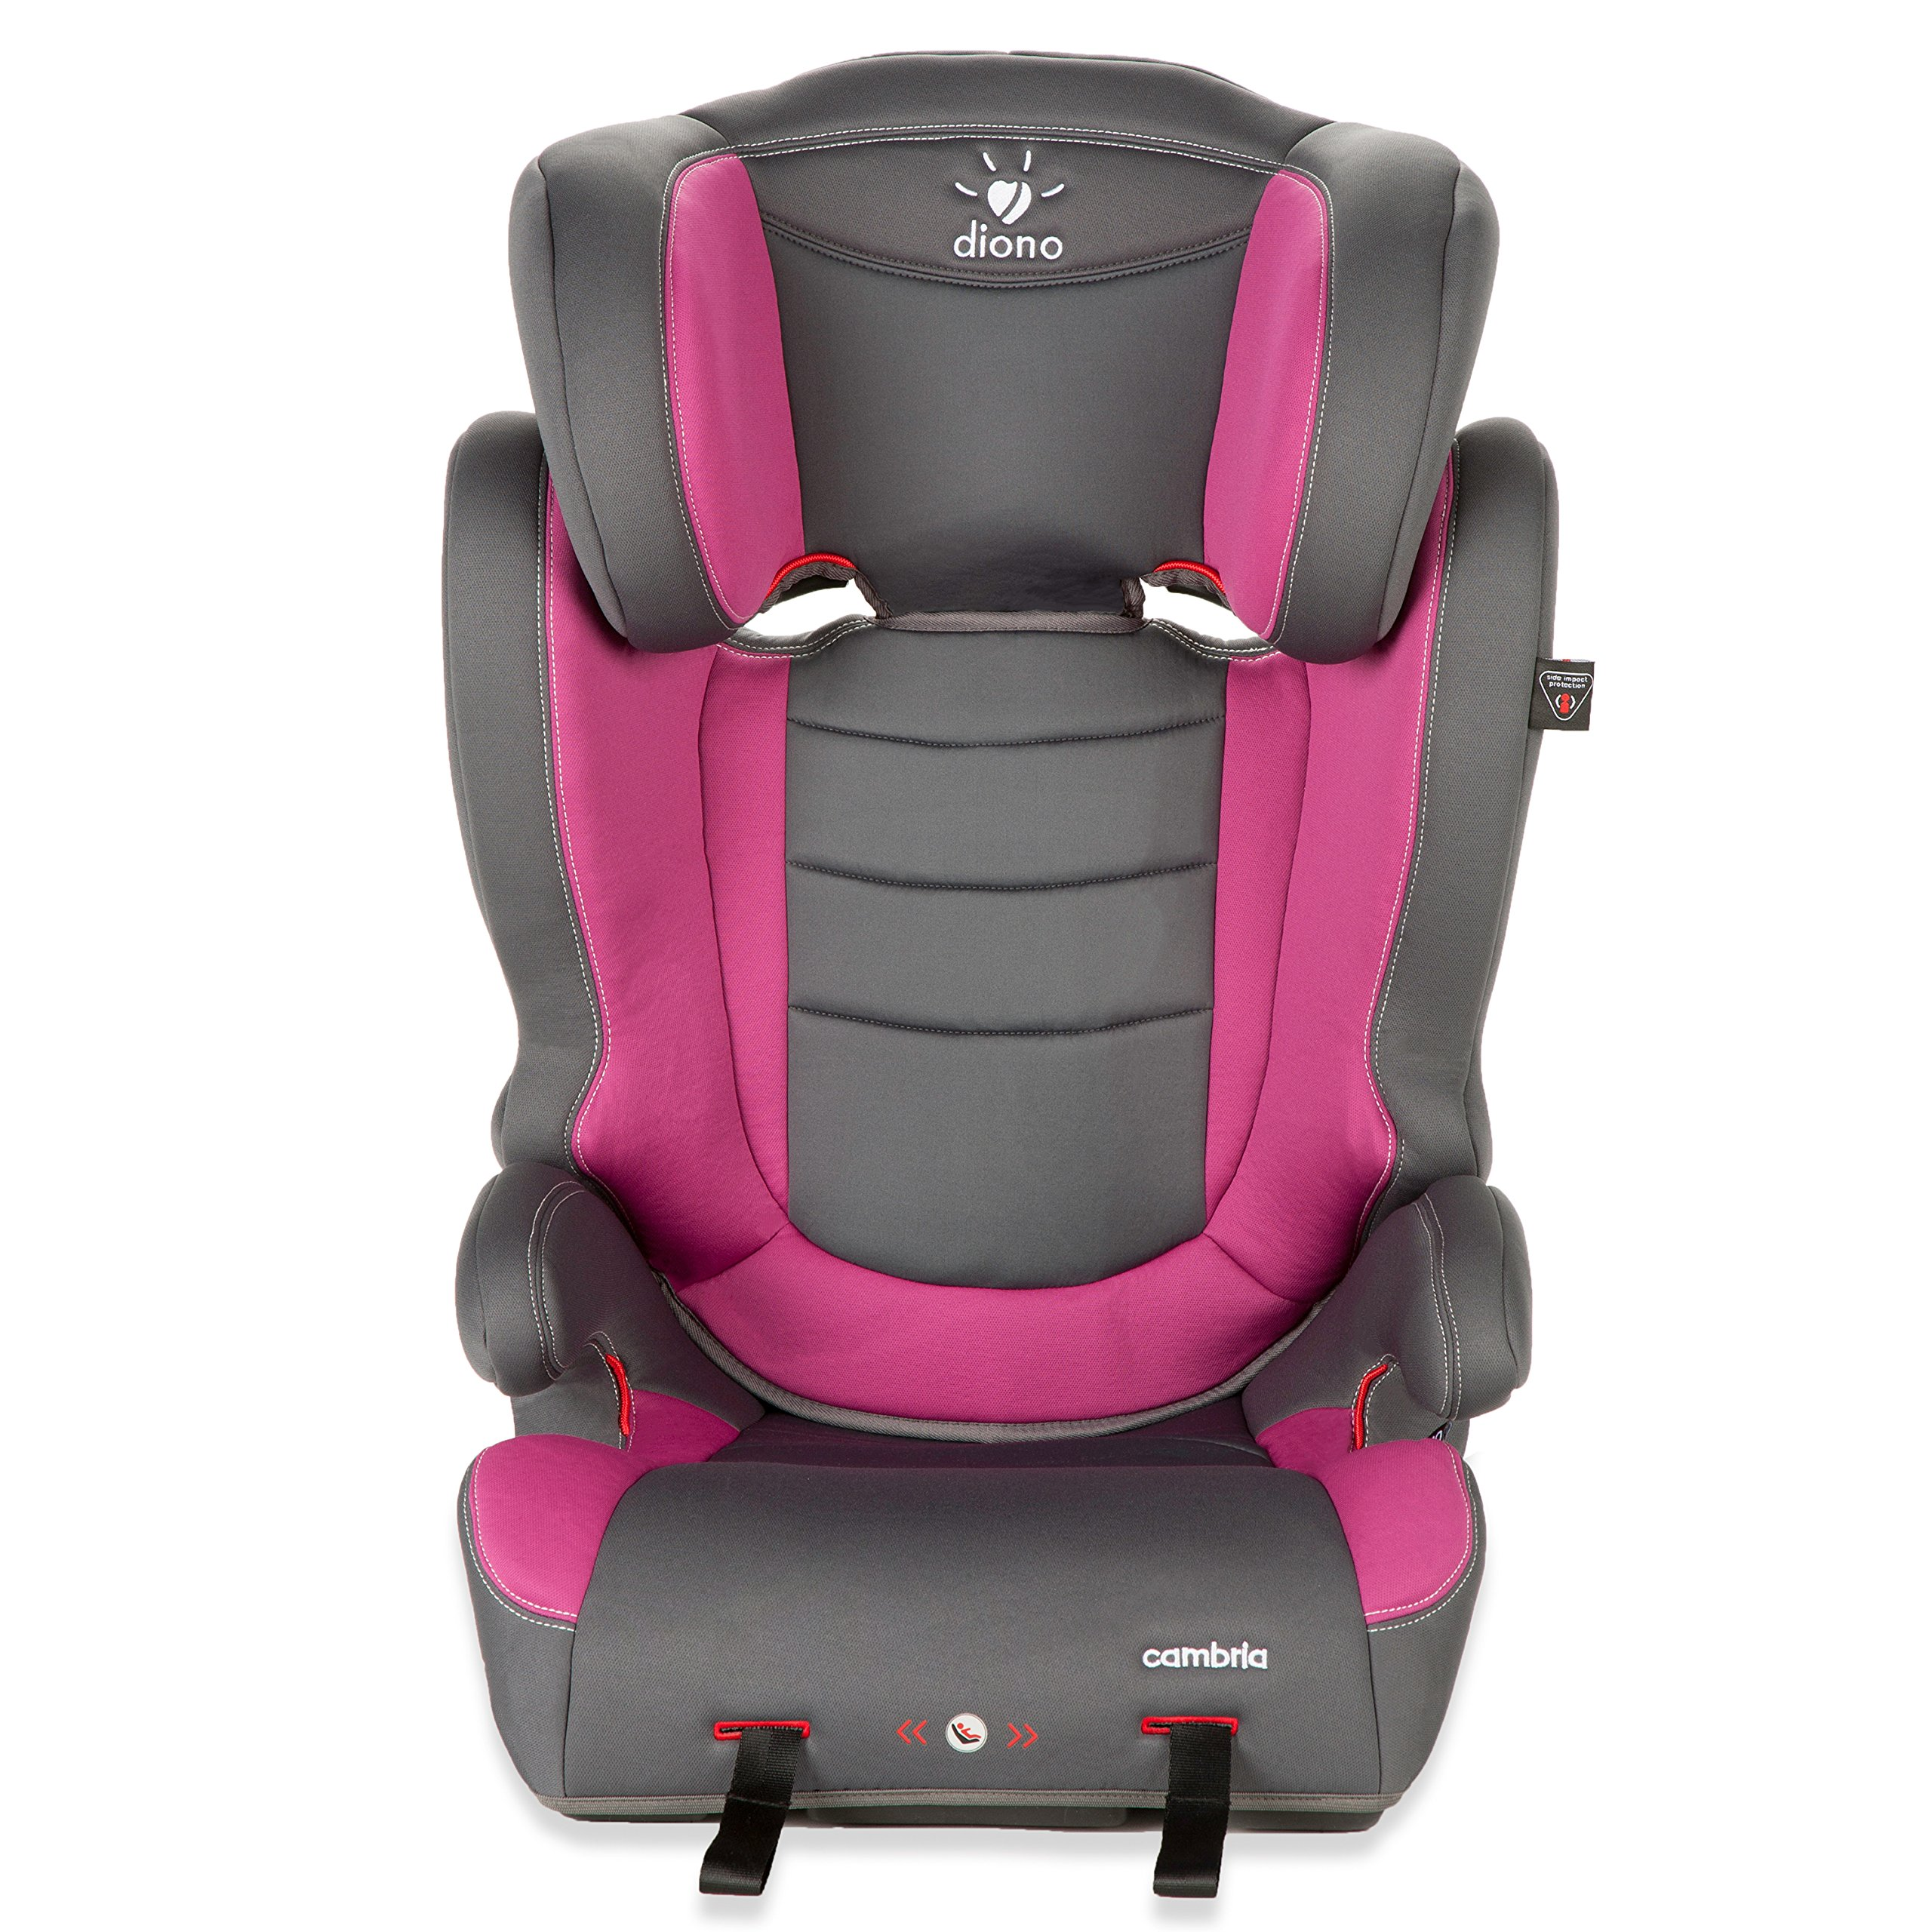 diono cambria booster car seat raspberry amazon. Black Bedroom Furniture Sets. Home Design Ideas